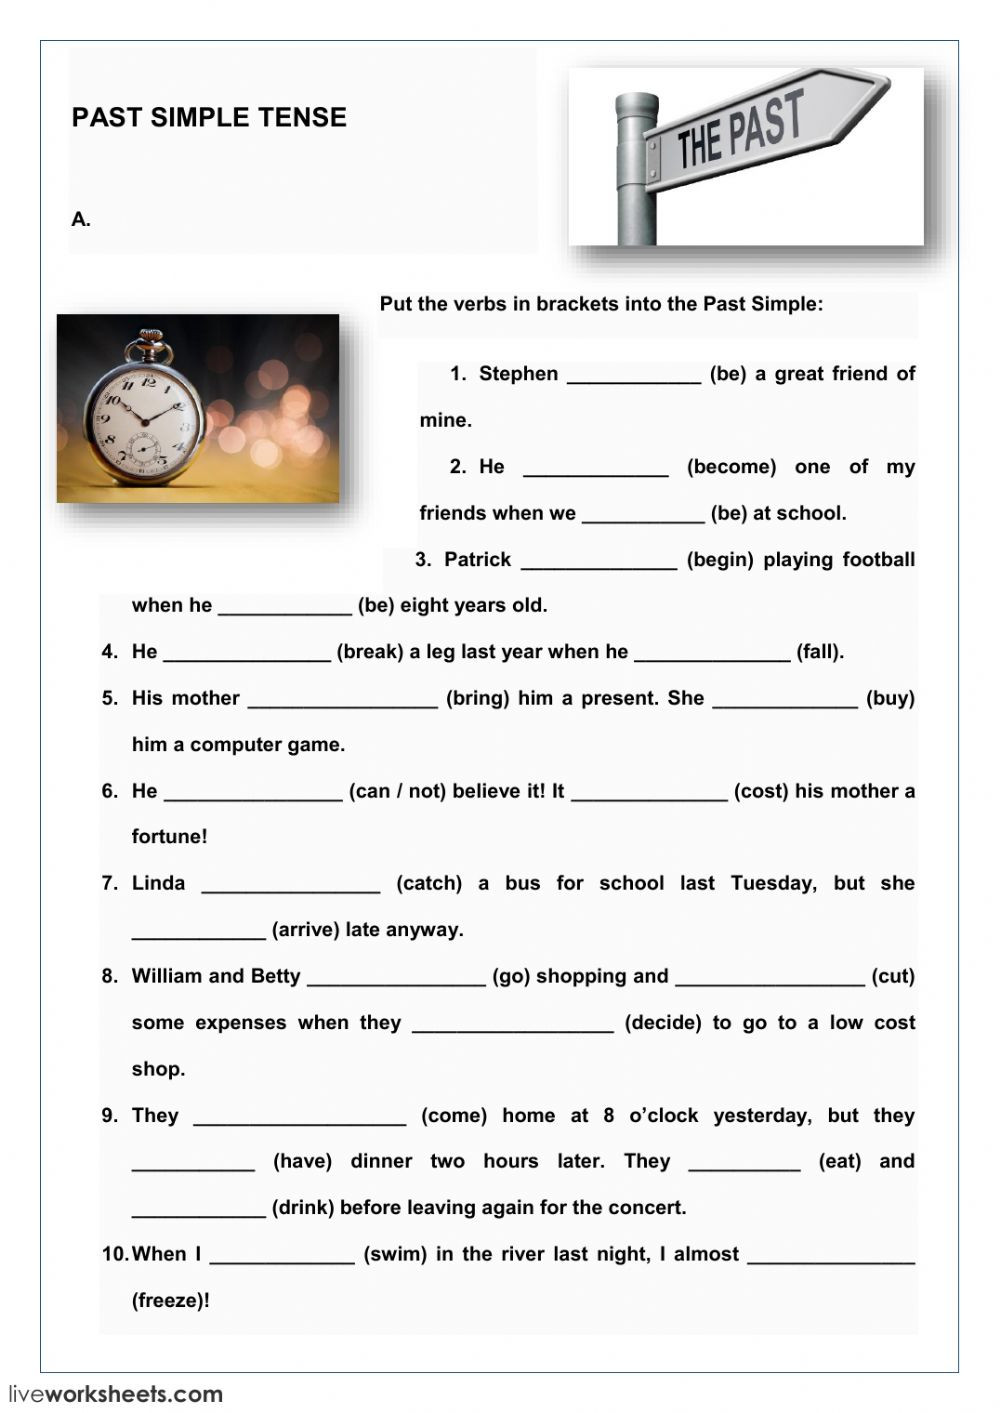 Tenses Worksheets for Grade 6 Past Simple Tense Interactive Worksheet